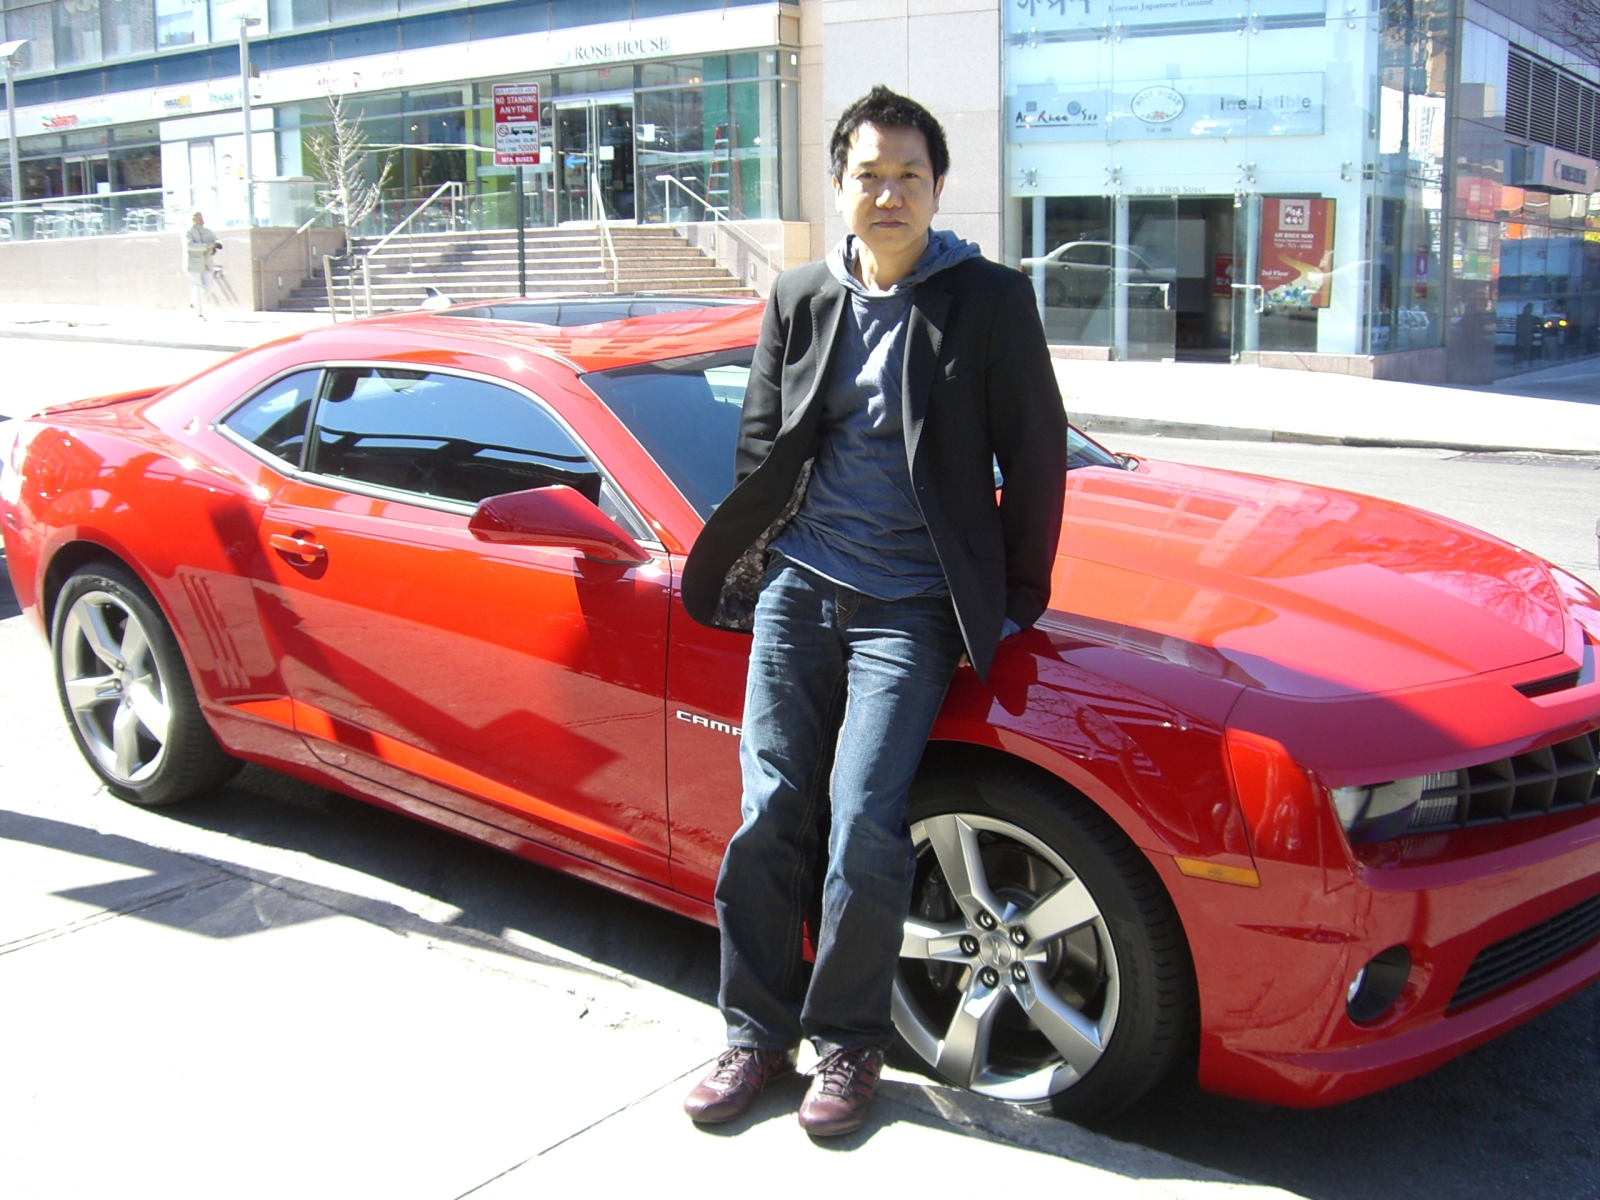 Lee Sangyup, who designed the 'Bumble Bee' Camaro in the Transformer movie, is one of the Korean hot shots in car design world right now. (Newsis photo)